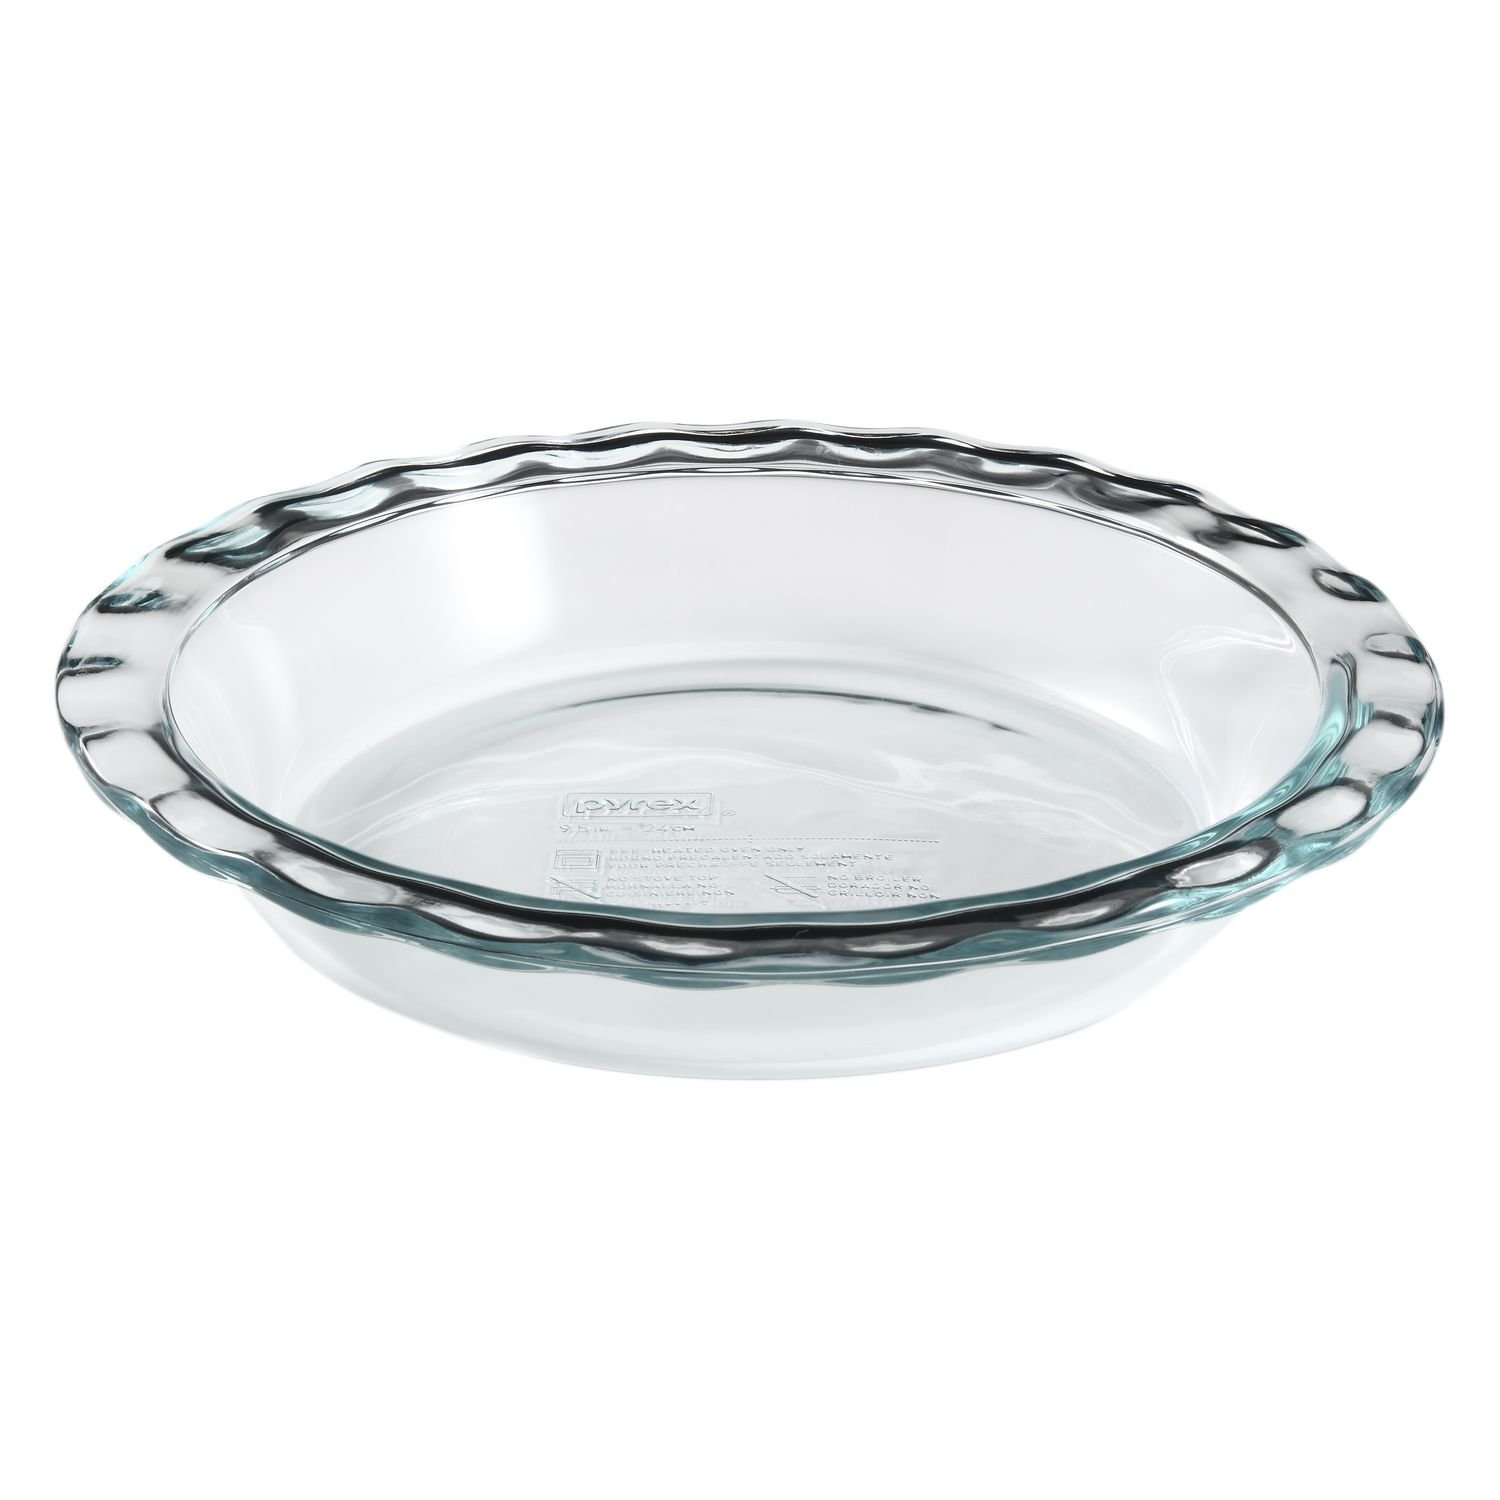 Pyrex Easy Grab 9.5'' Glass Pie Plate (Pack of 3) by Pyrex